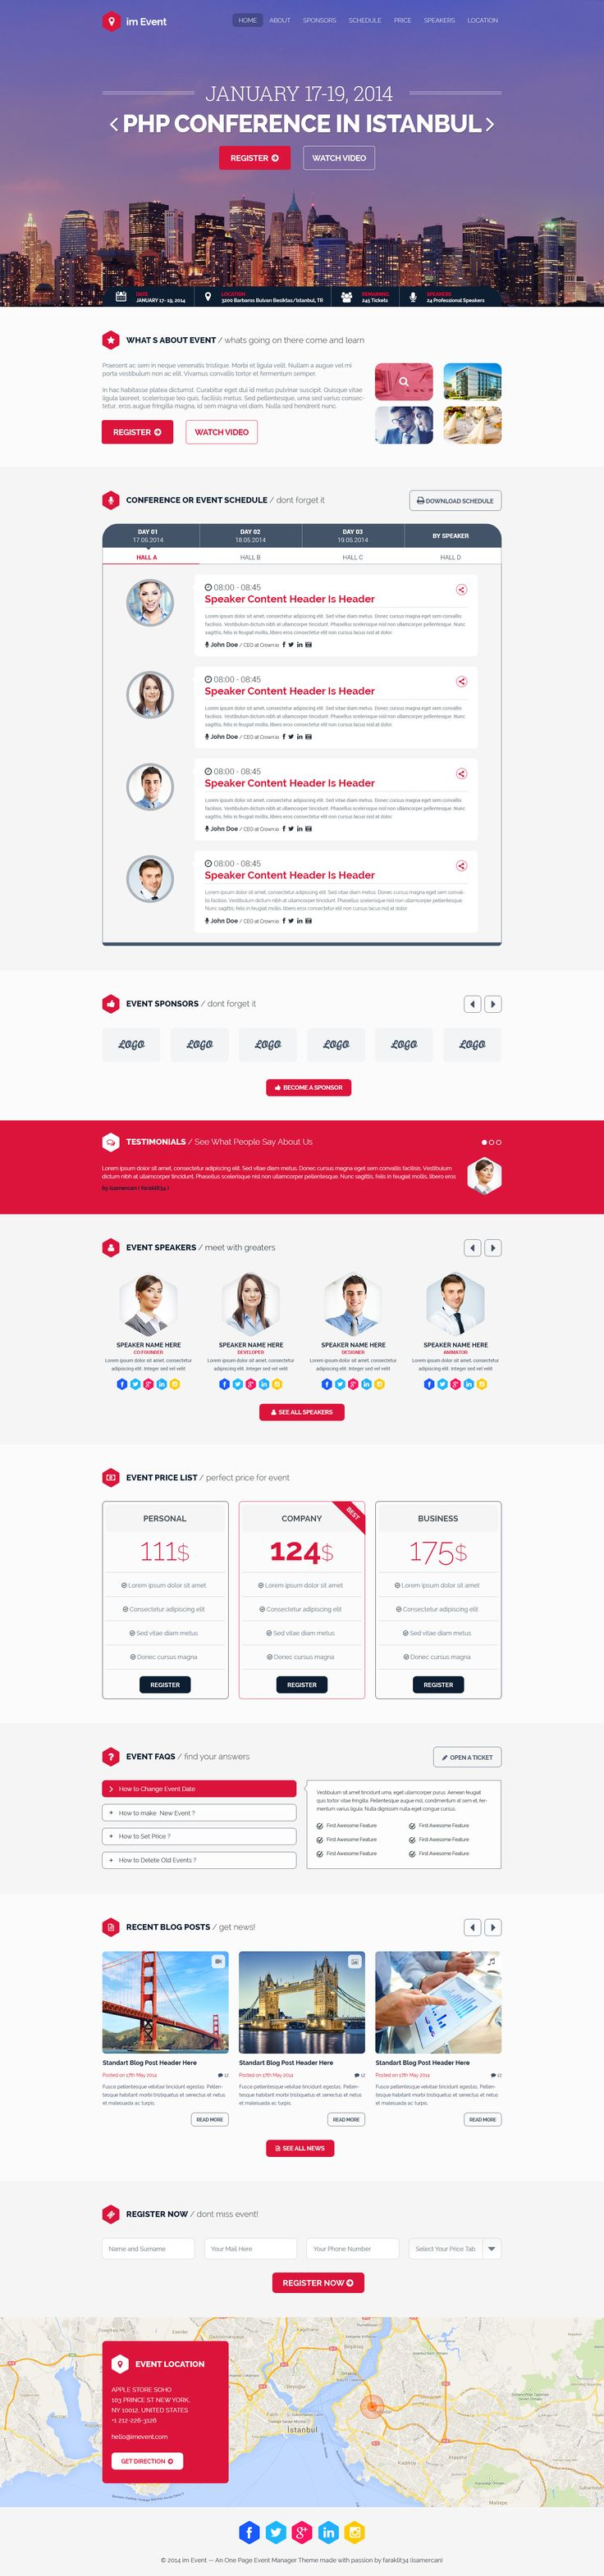 20 best event web templates images on pinterest psd templates im event one page event and conference template by faraklit34 themeforest pronofoot35fo Image collections